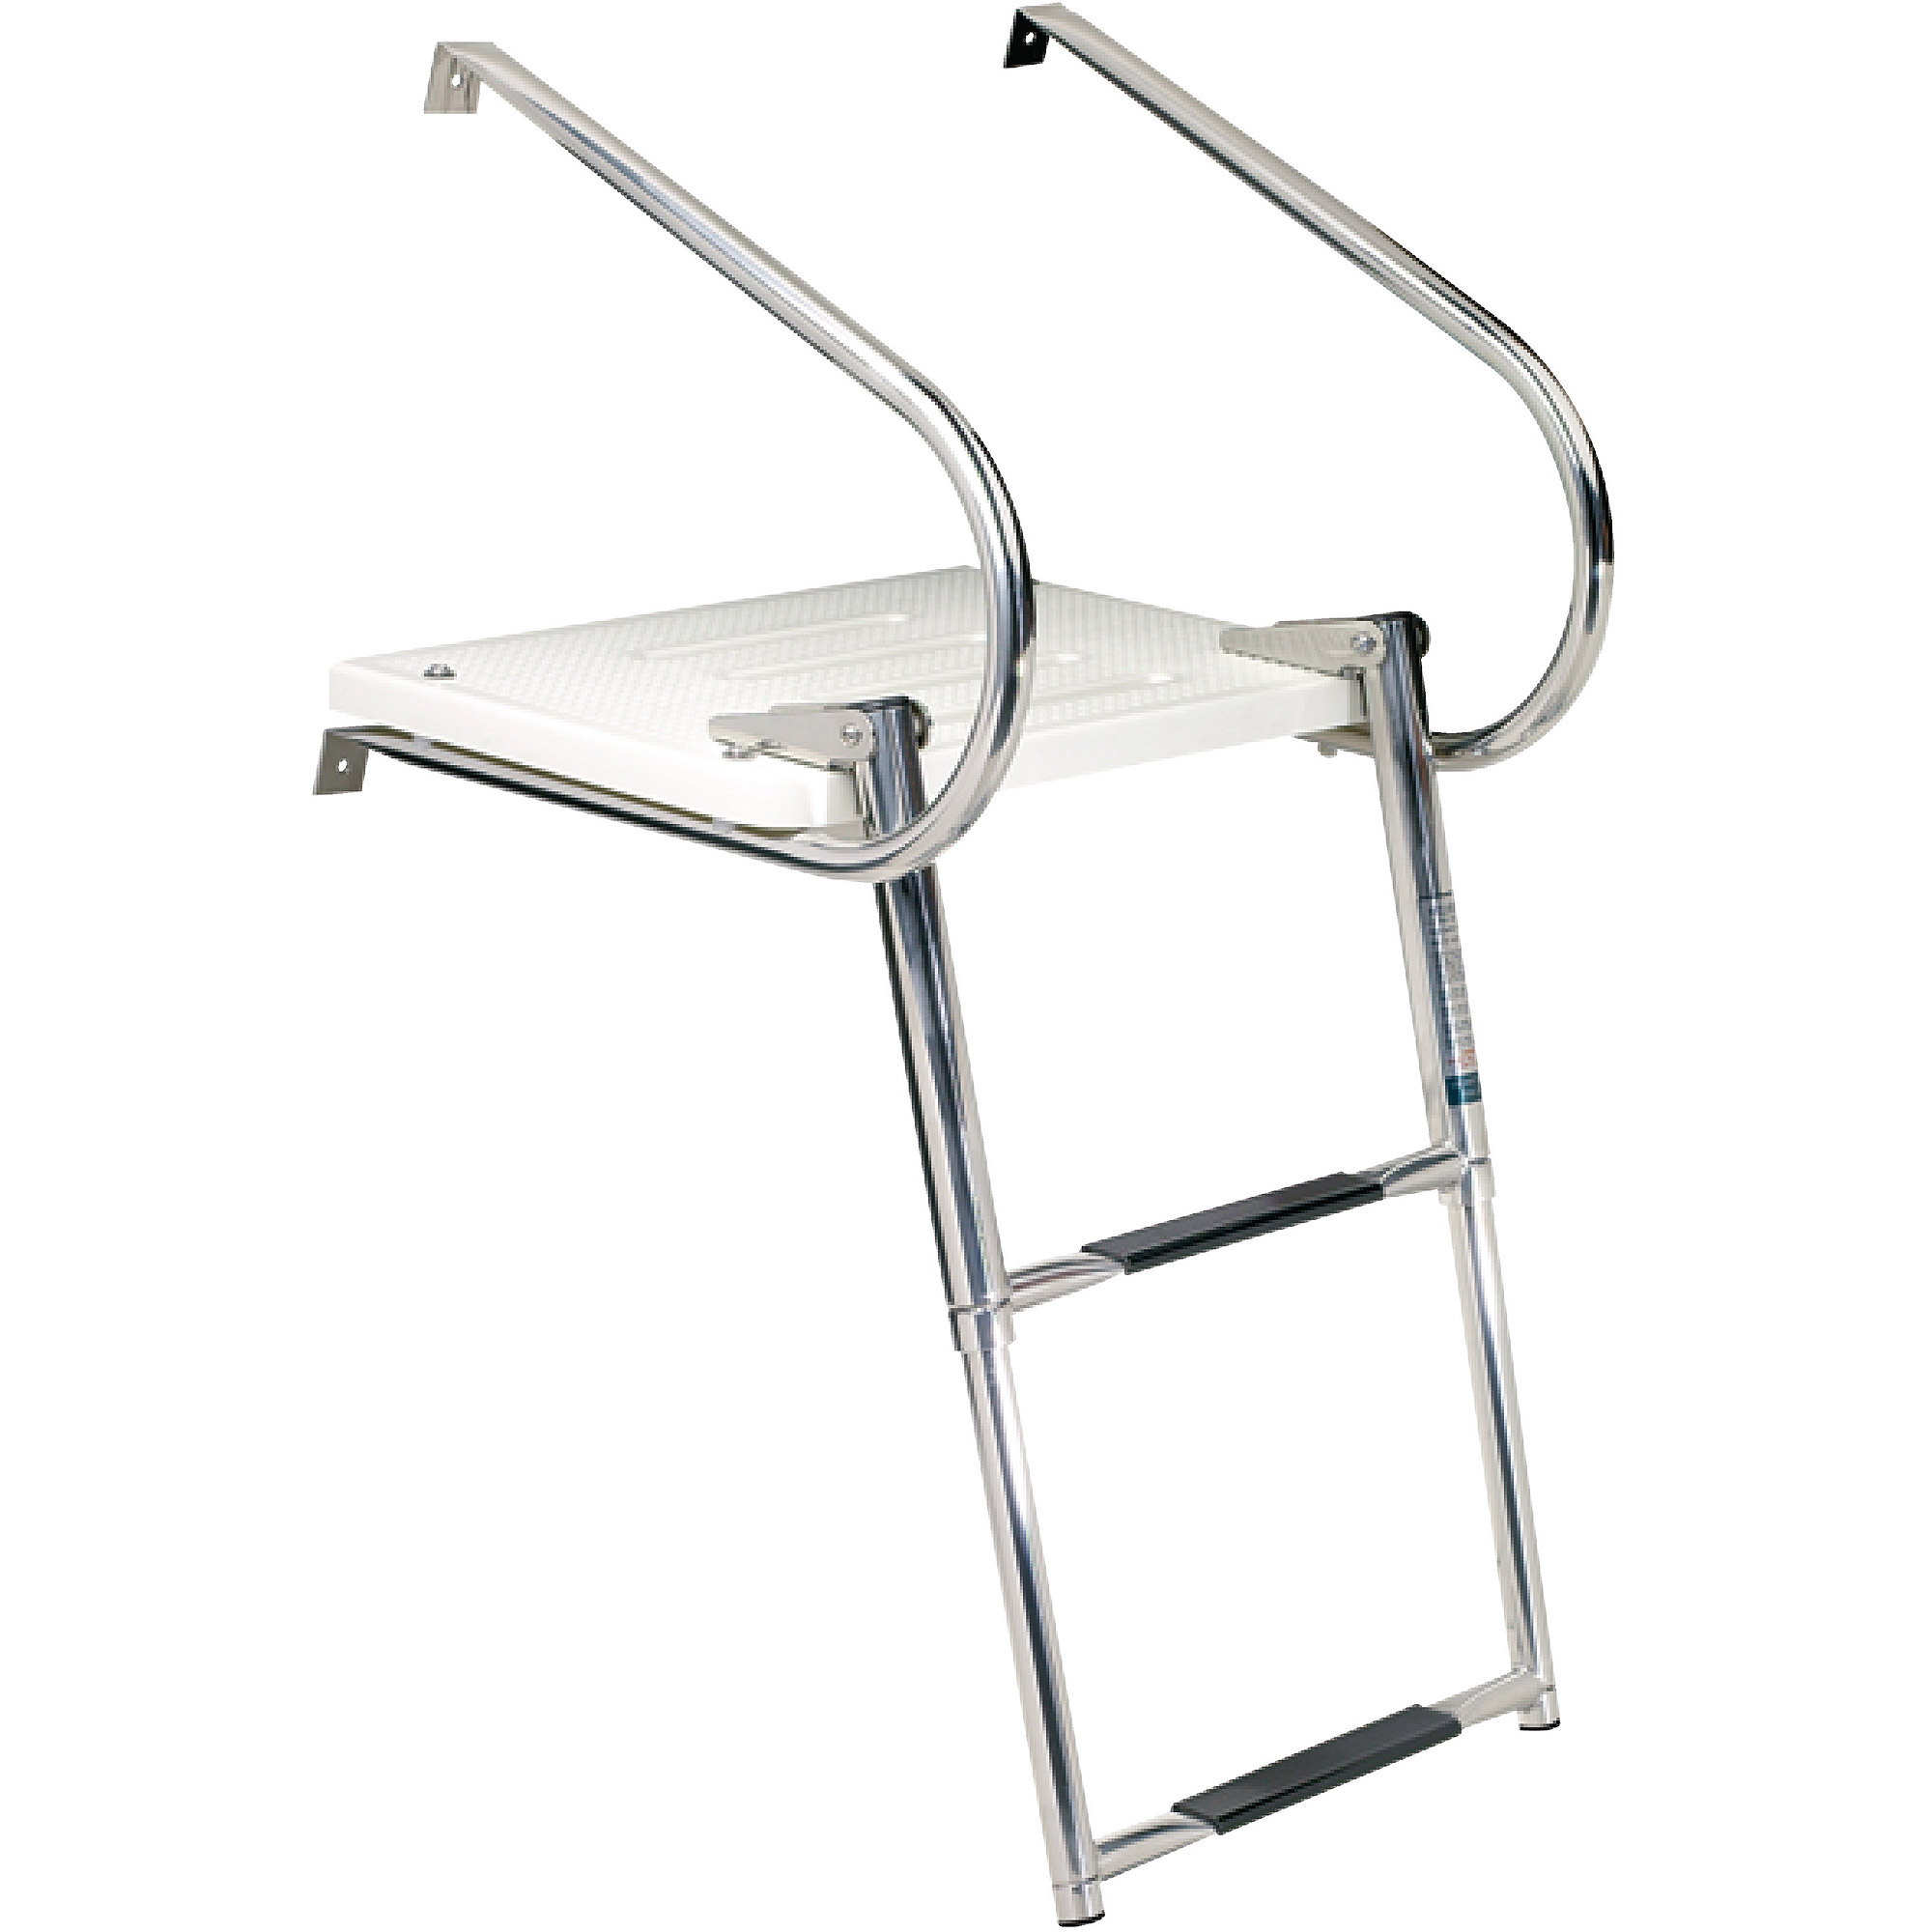 Seachoice Universal Swim Platform with Top-Mount Ladder by Seachoice